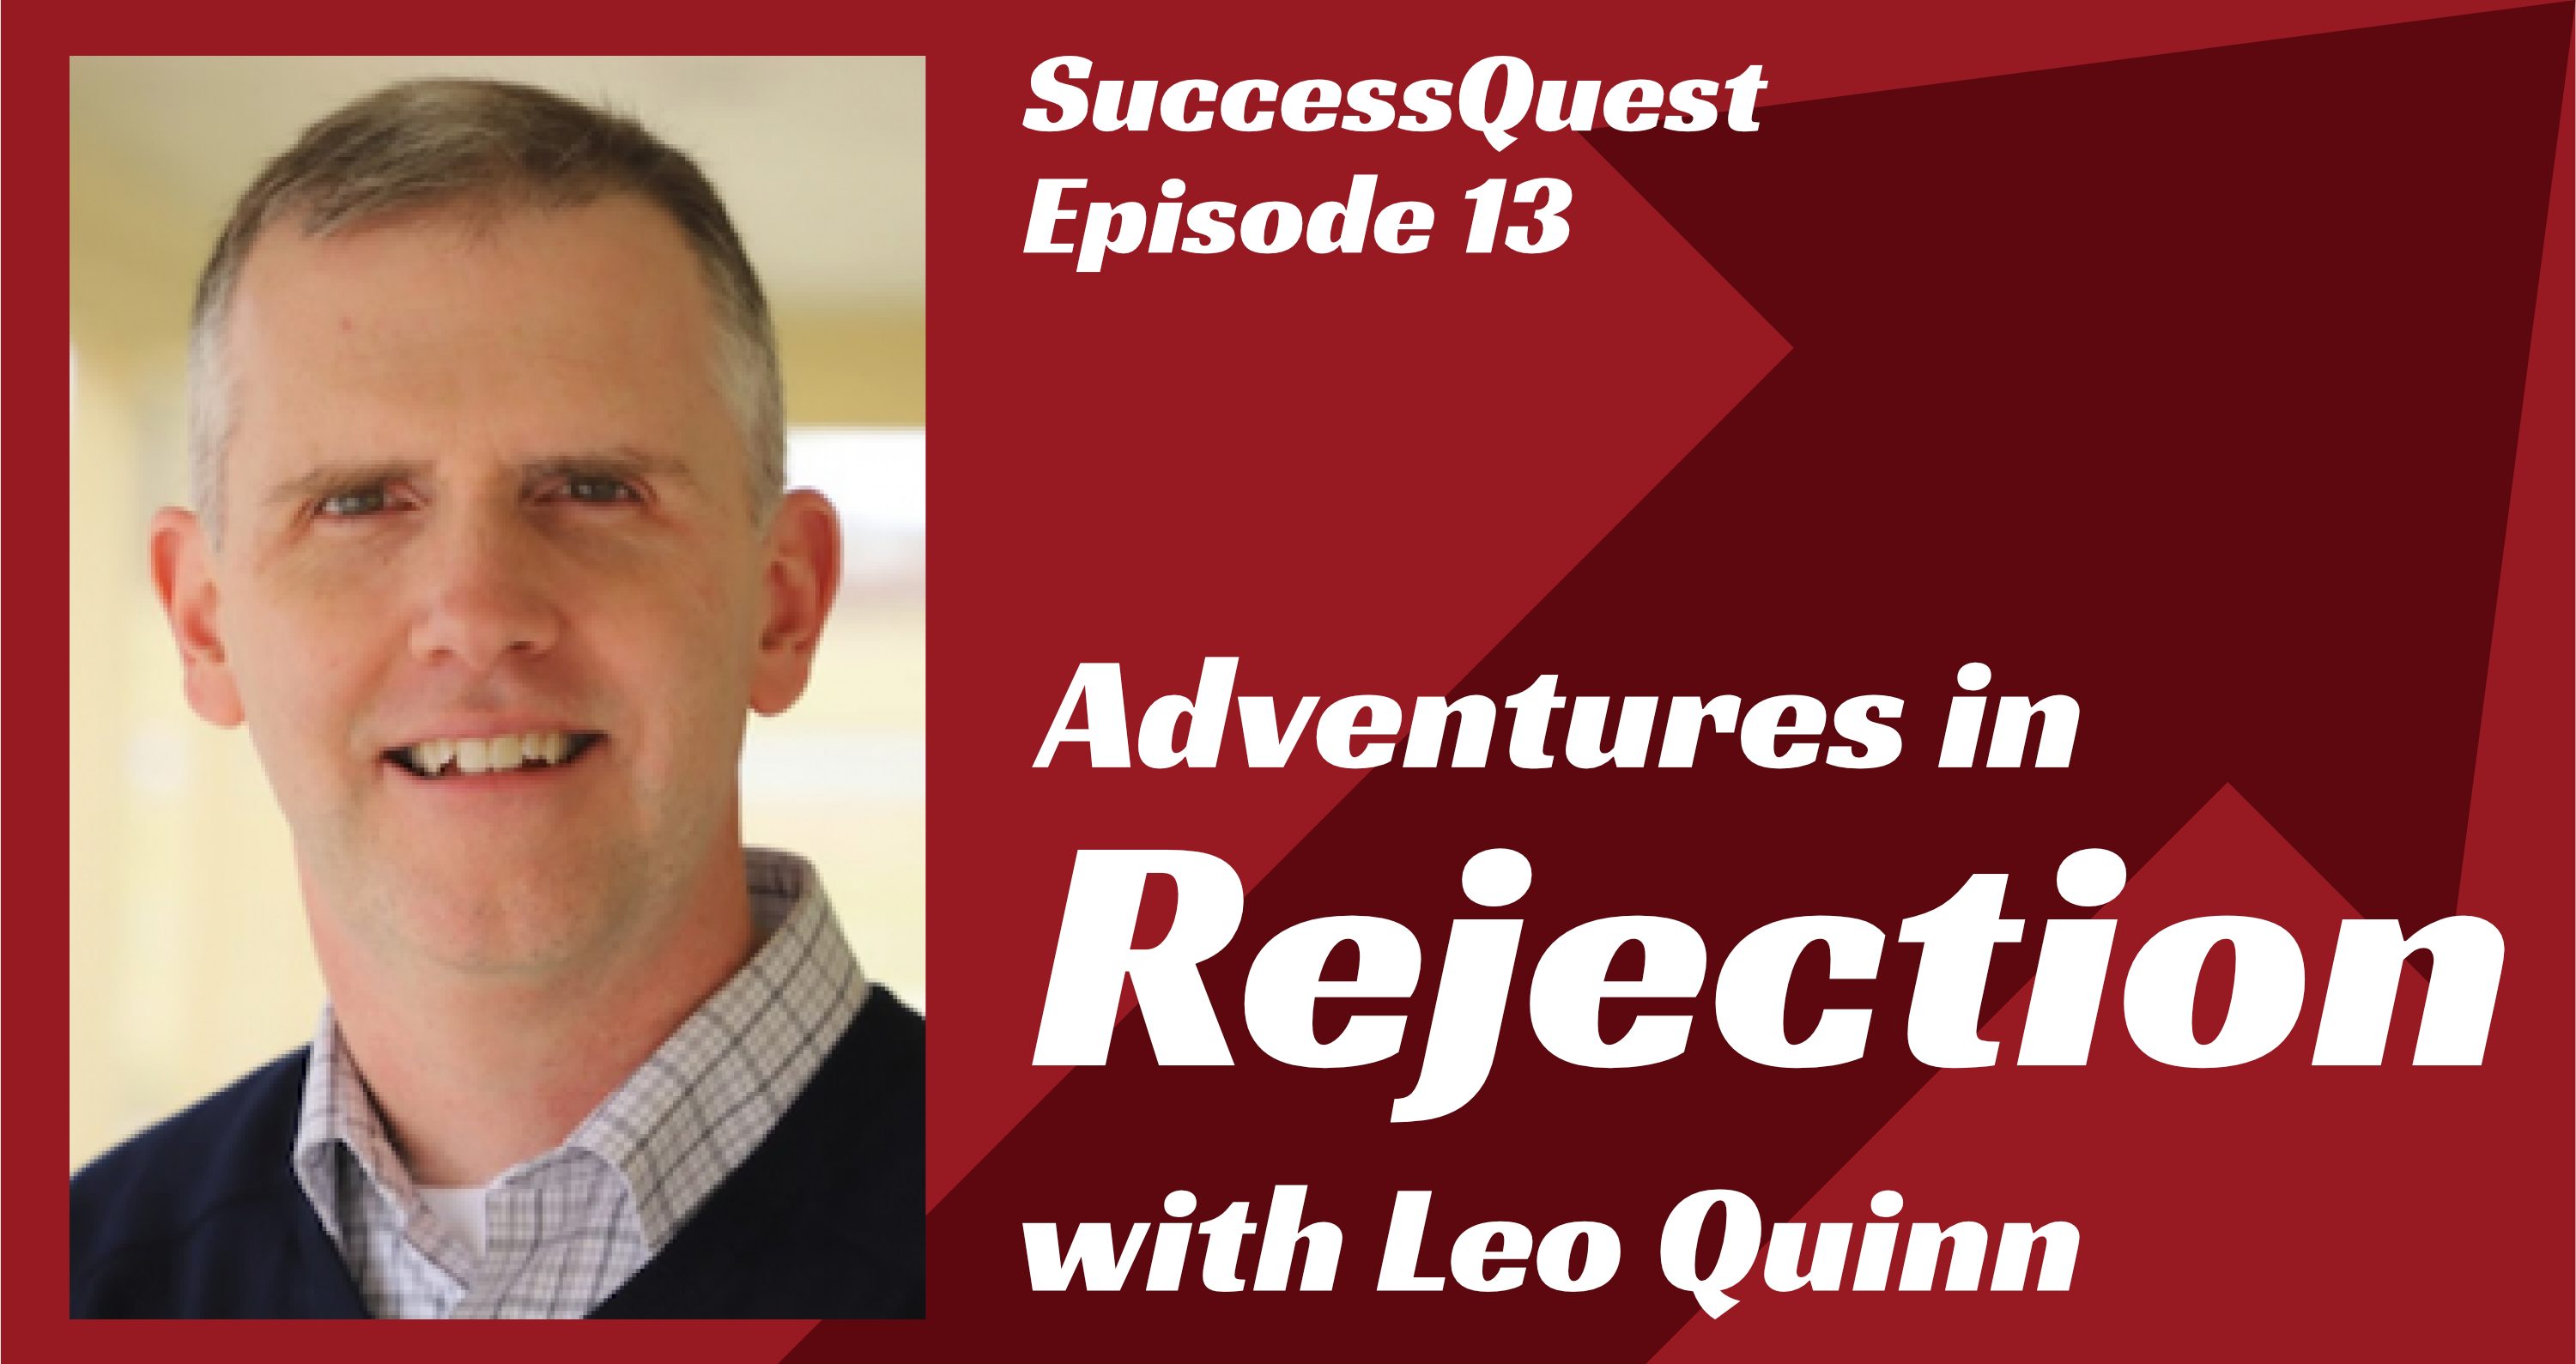 Leo Quinn - Adventures in Rejection